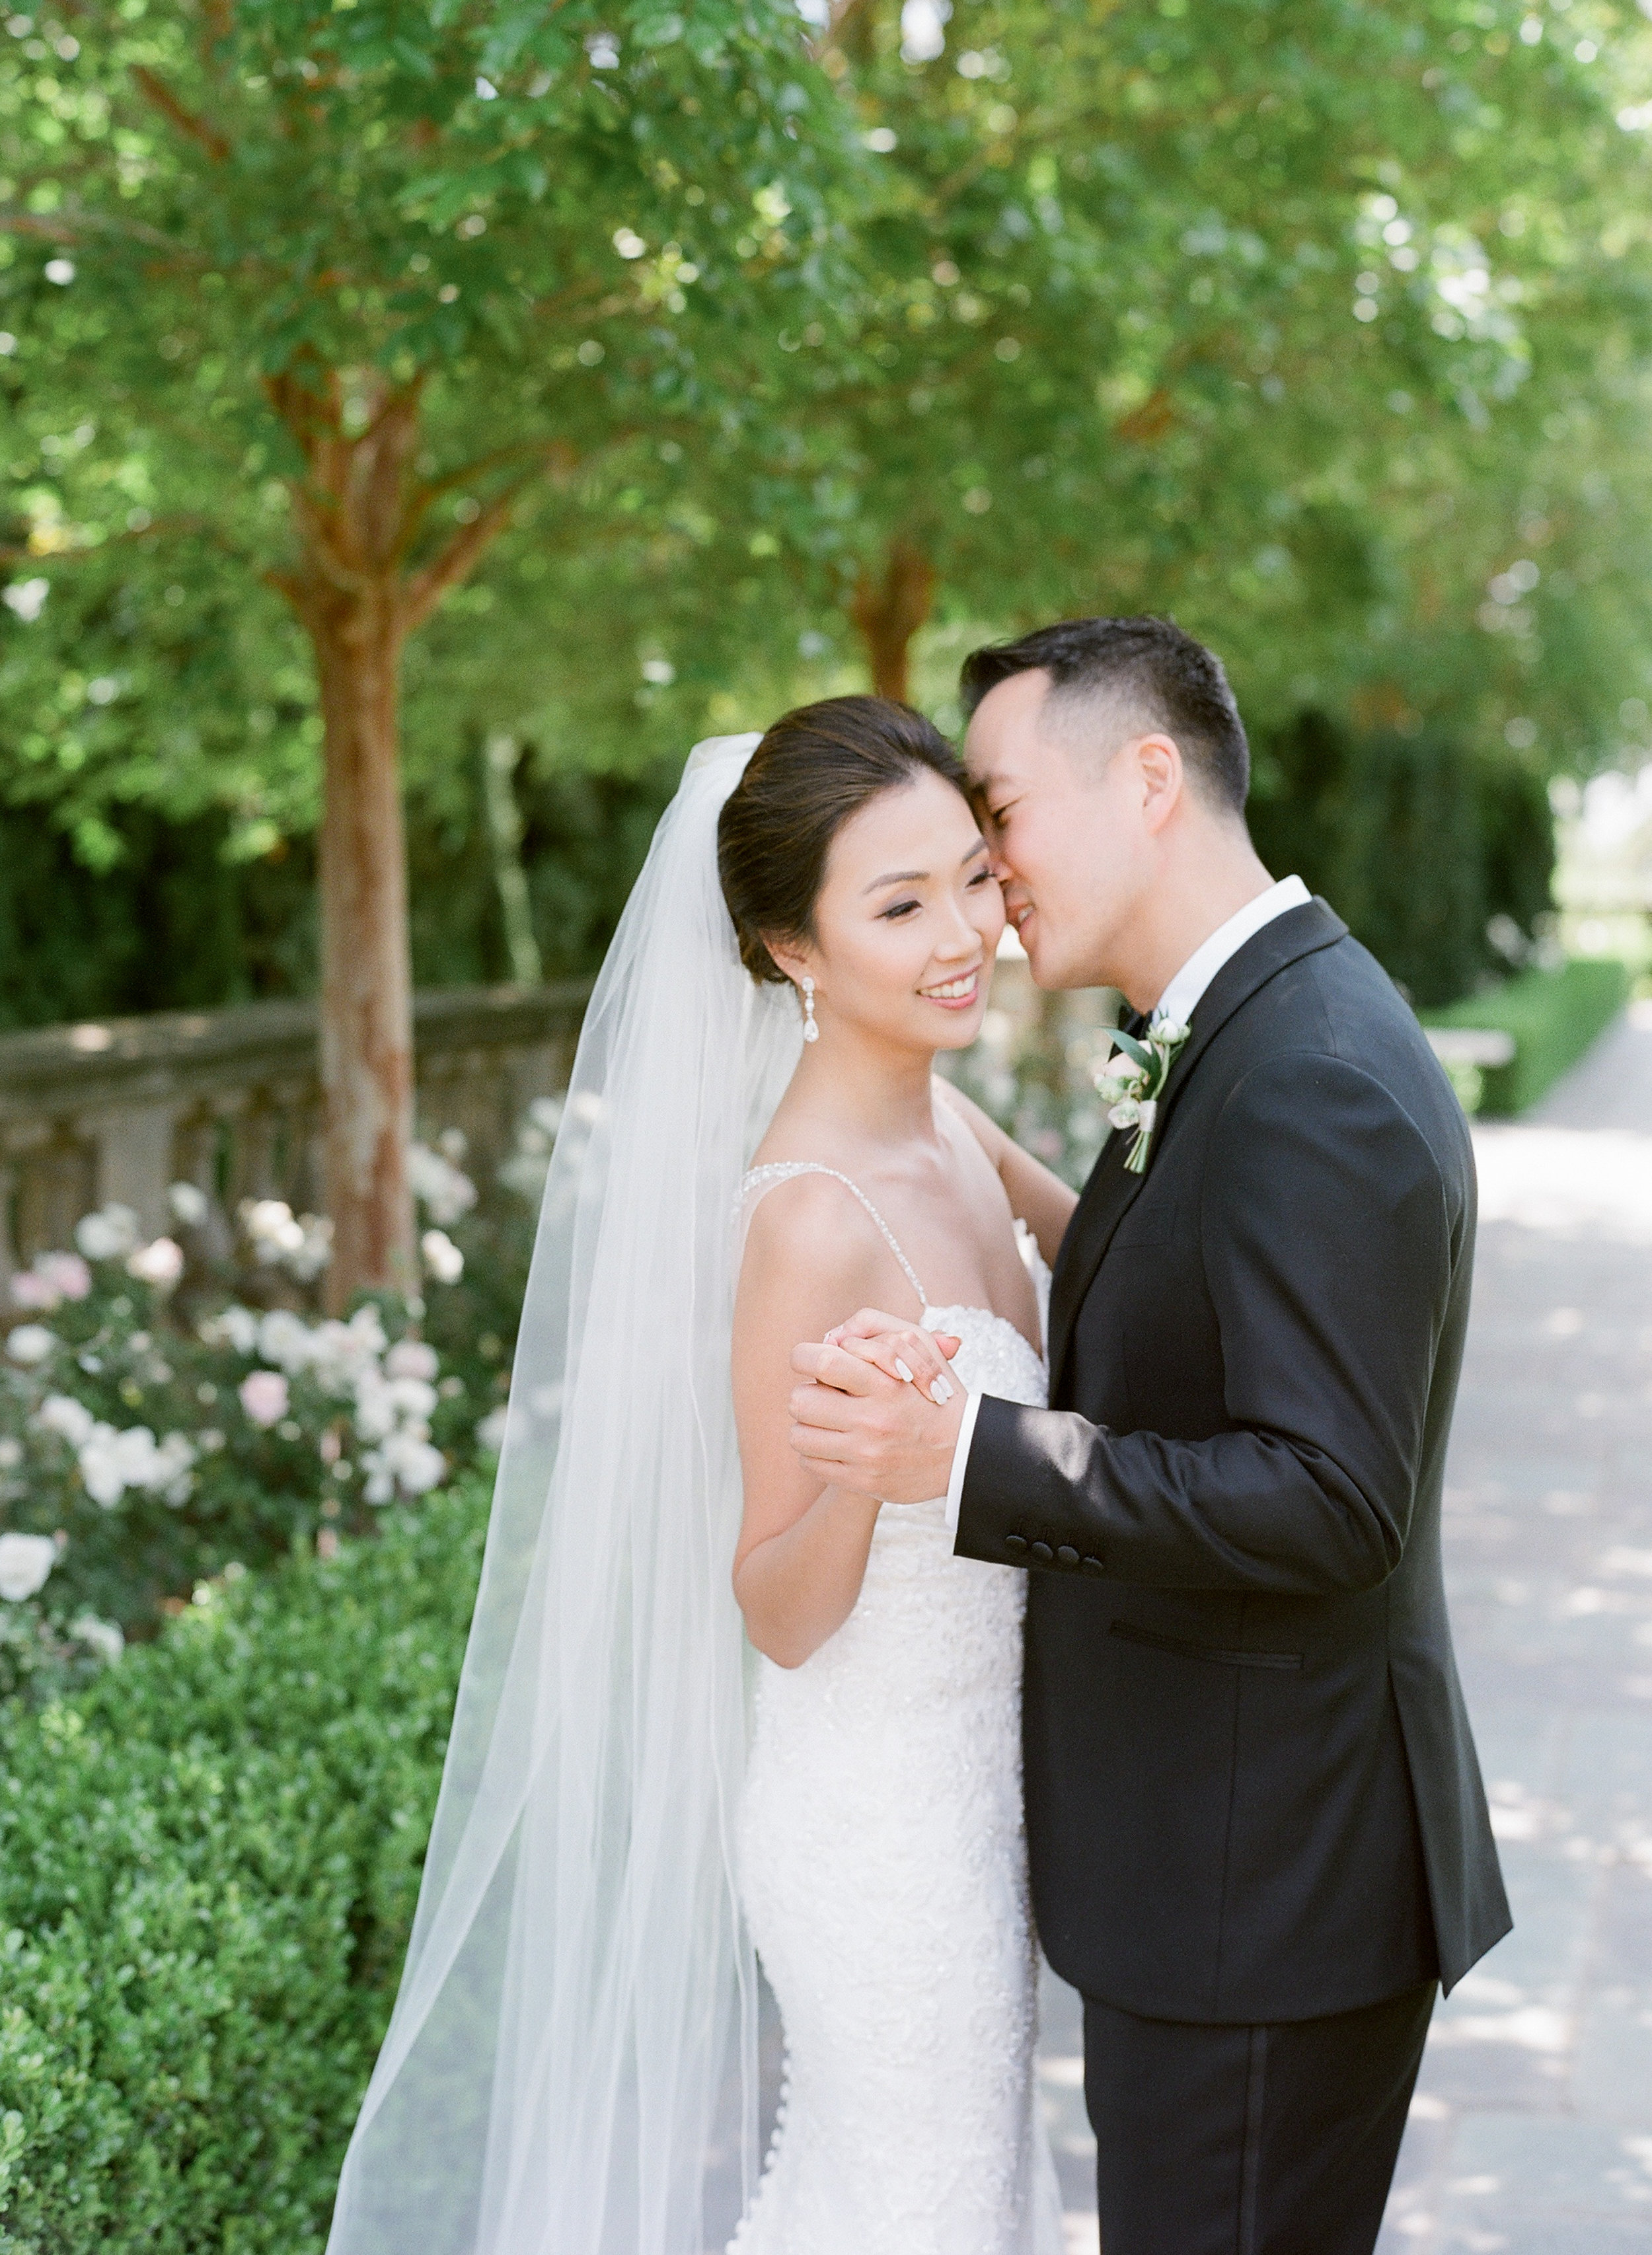 Greystone-Mansion-Wedding-Kristina-Adams-188.jpg